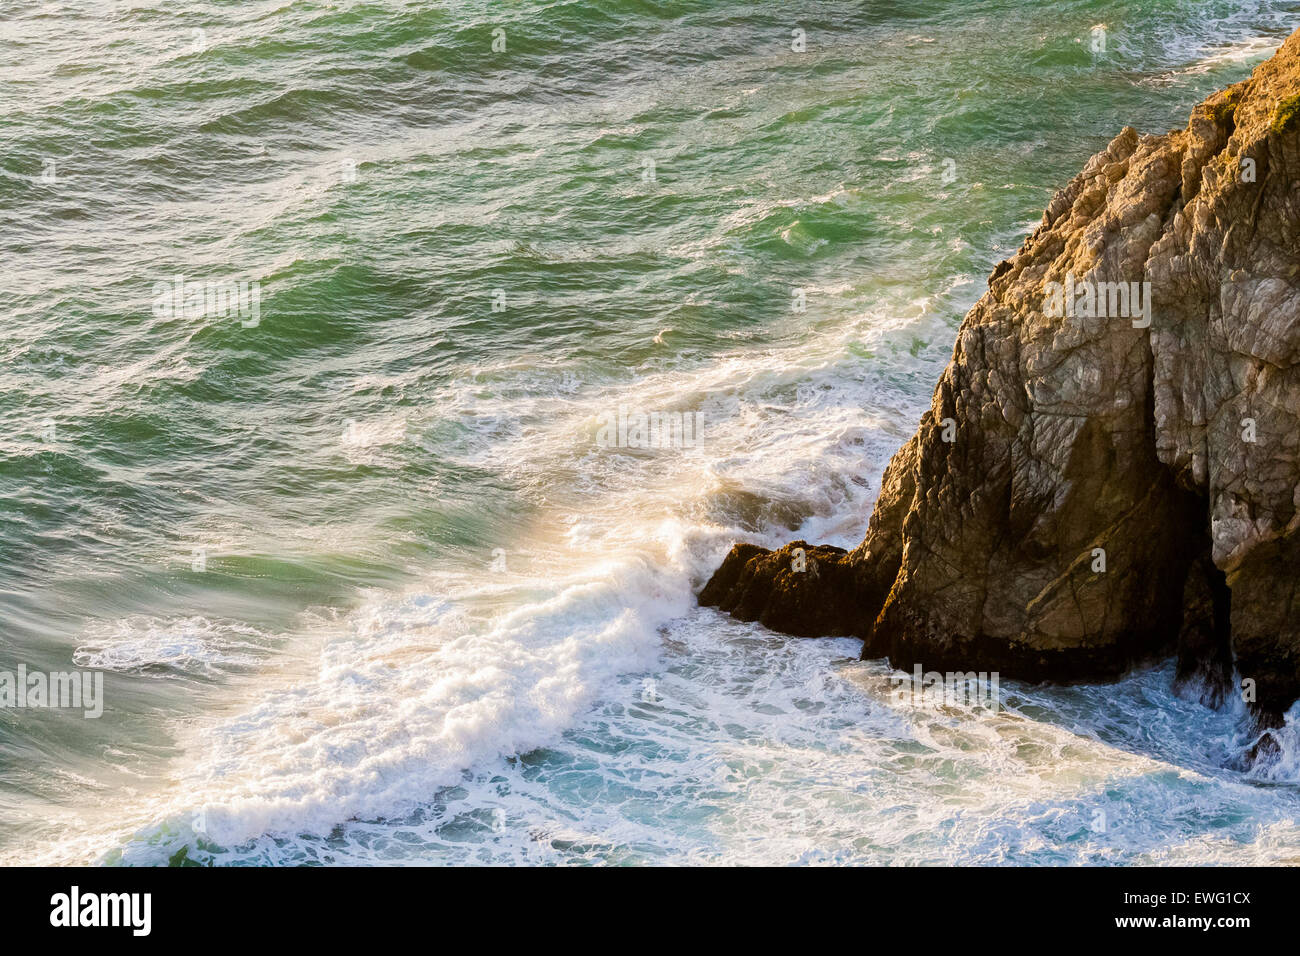 Ocean Waves Against Rocky Outcrop Outcrop Rock Tide Water White Water background ocean outdoor sea waves - Stock Image